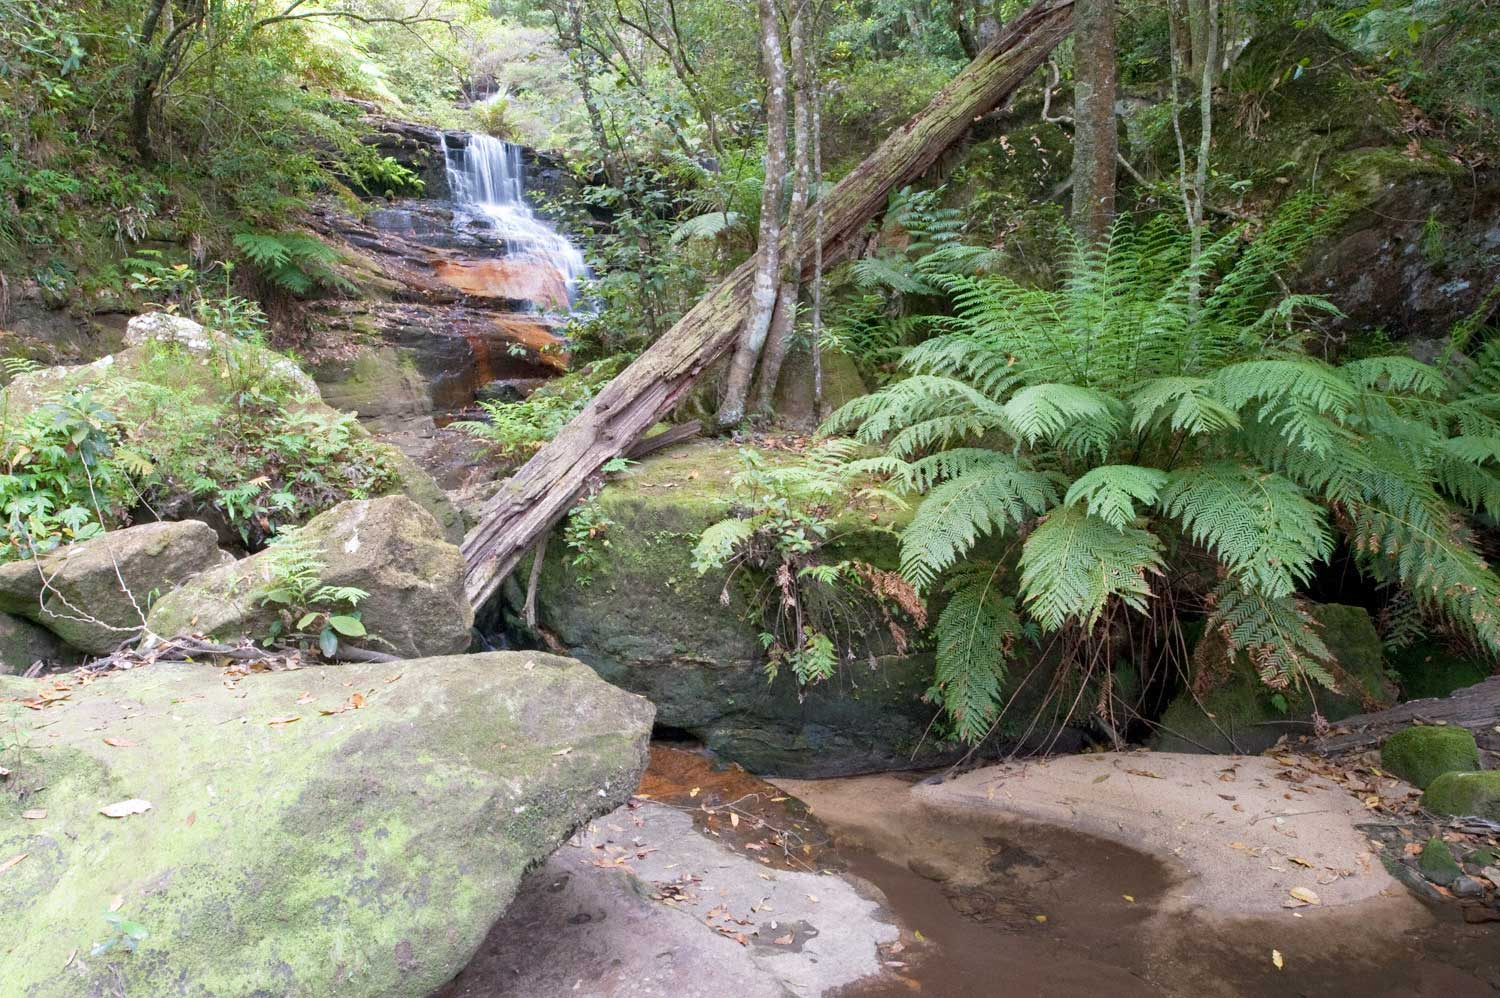 Warren-Hinder-LR-Waterfall-and-Fern-sudy-Wentworth-Pass.jpg